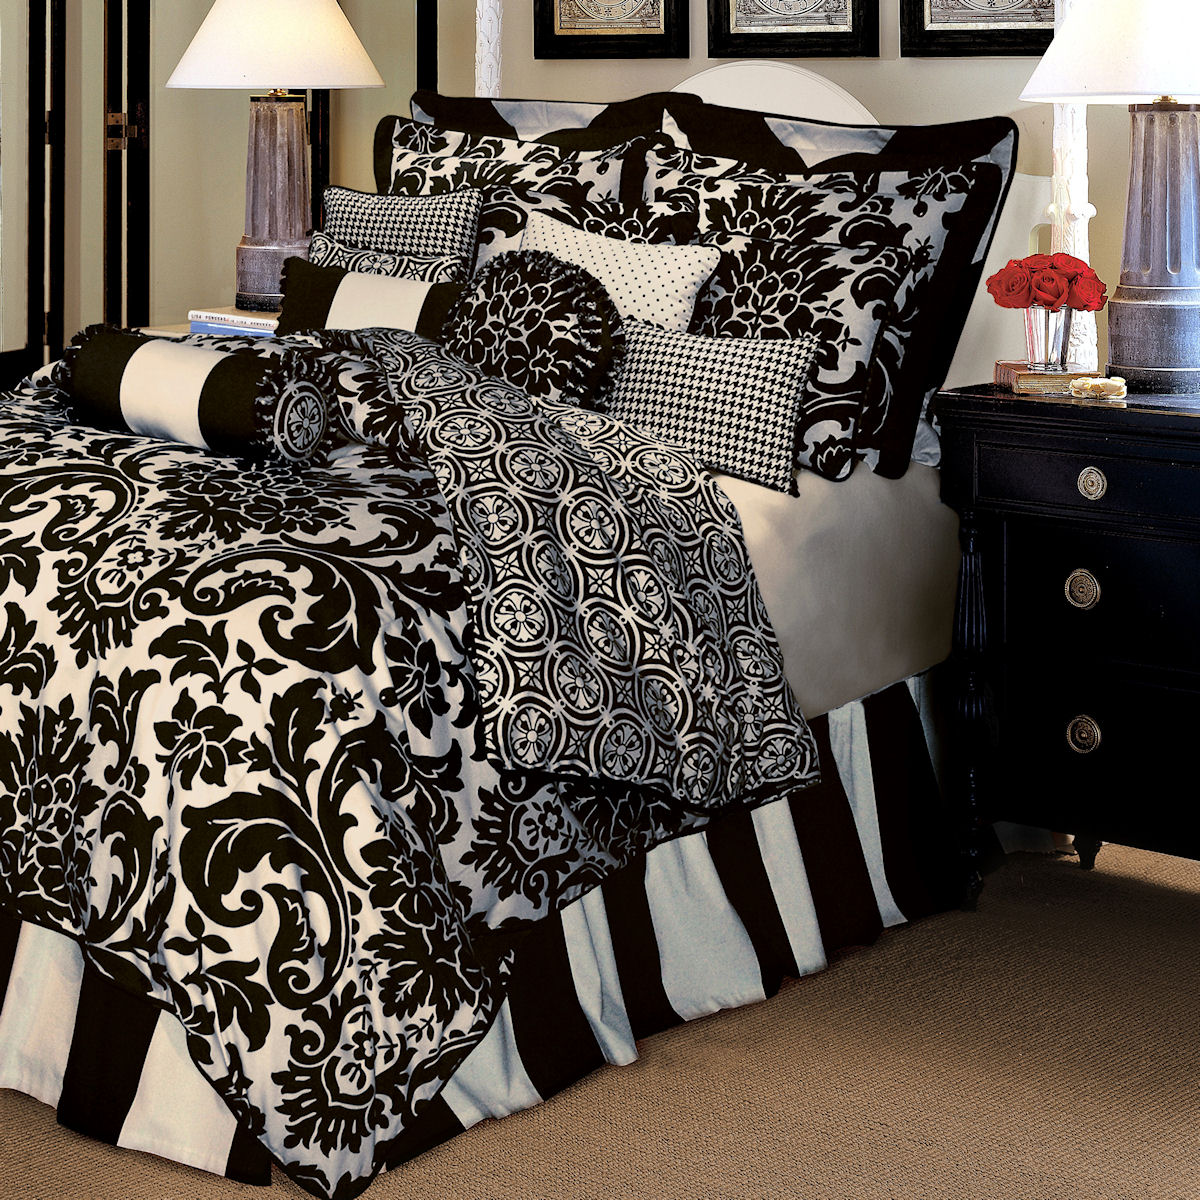 Interesting Black And White Bedding Ideas With Amazing